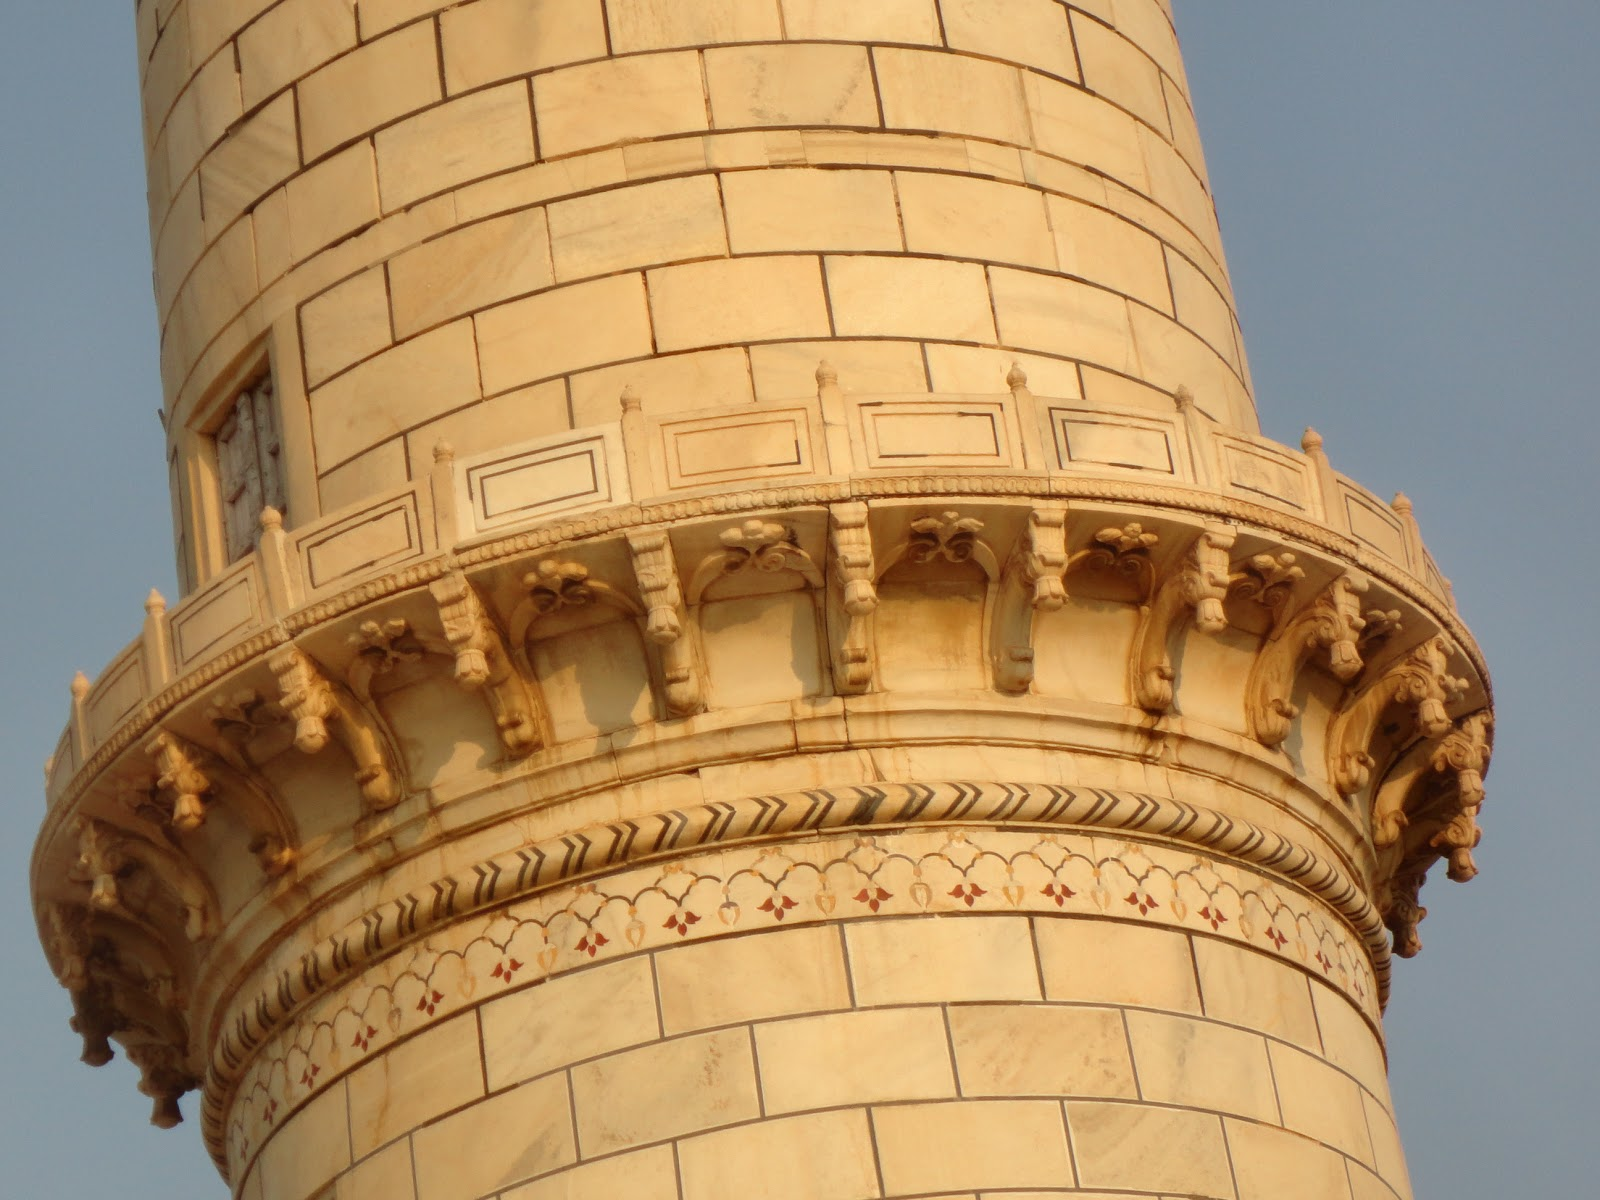 Marble Sculptures on Minarets of The Taj Mahal